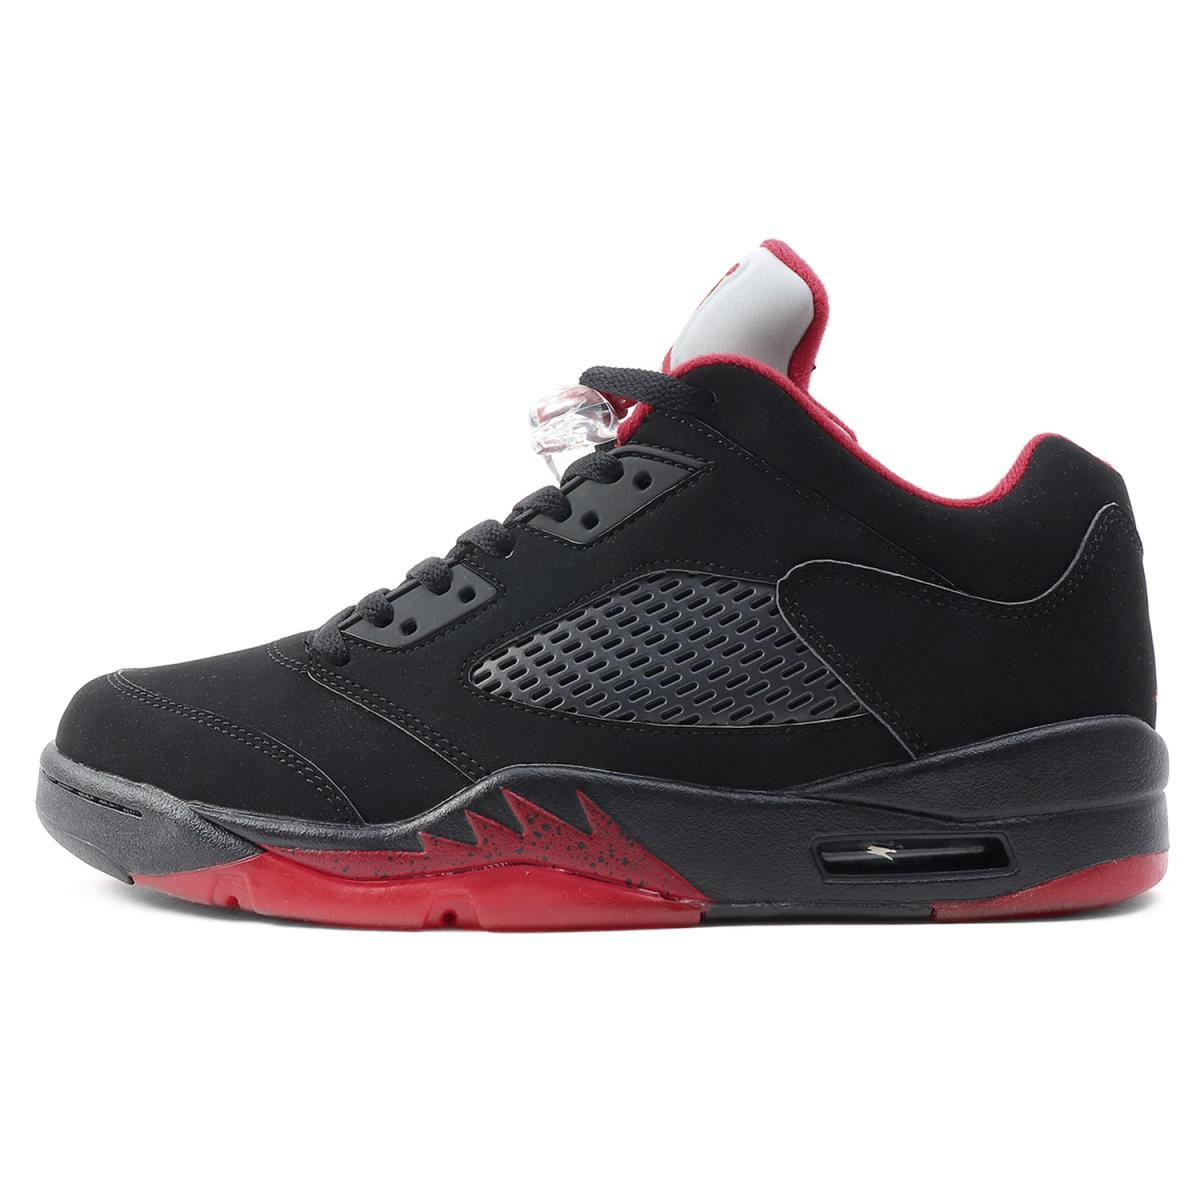 premium selection effc7 776a0 NIKE (Nike) AIR JORDAN 5 RETRO LOW ALTERNATE (819,171-001) black X gym red  US9.5(27.5cm)